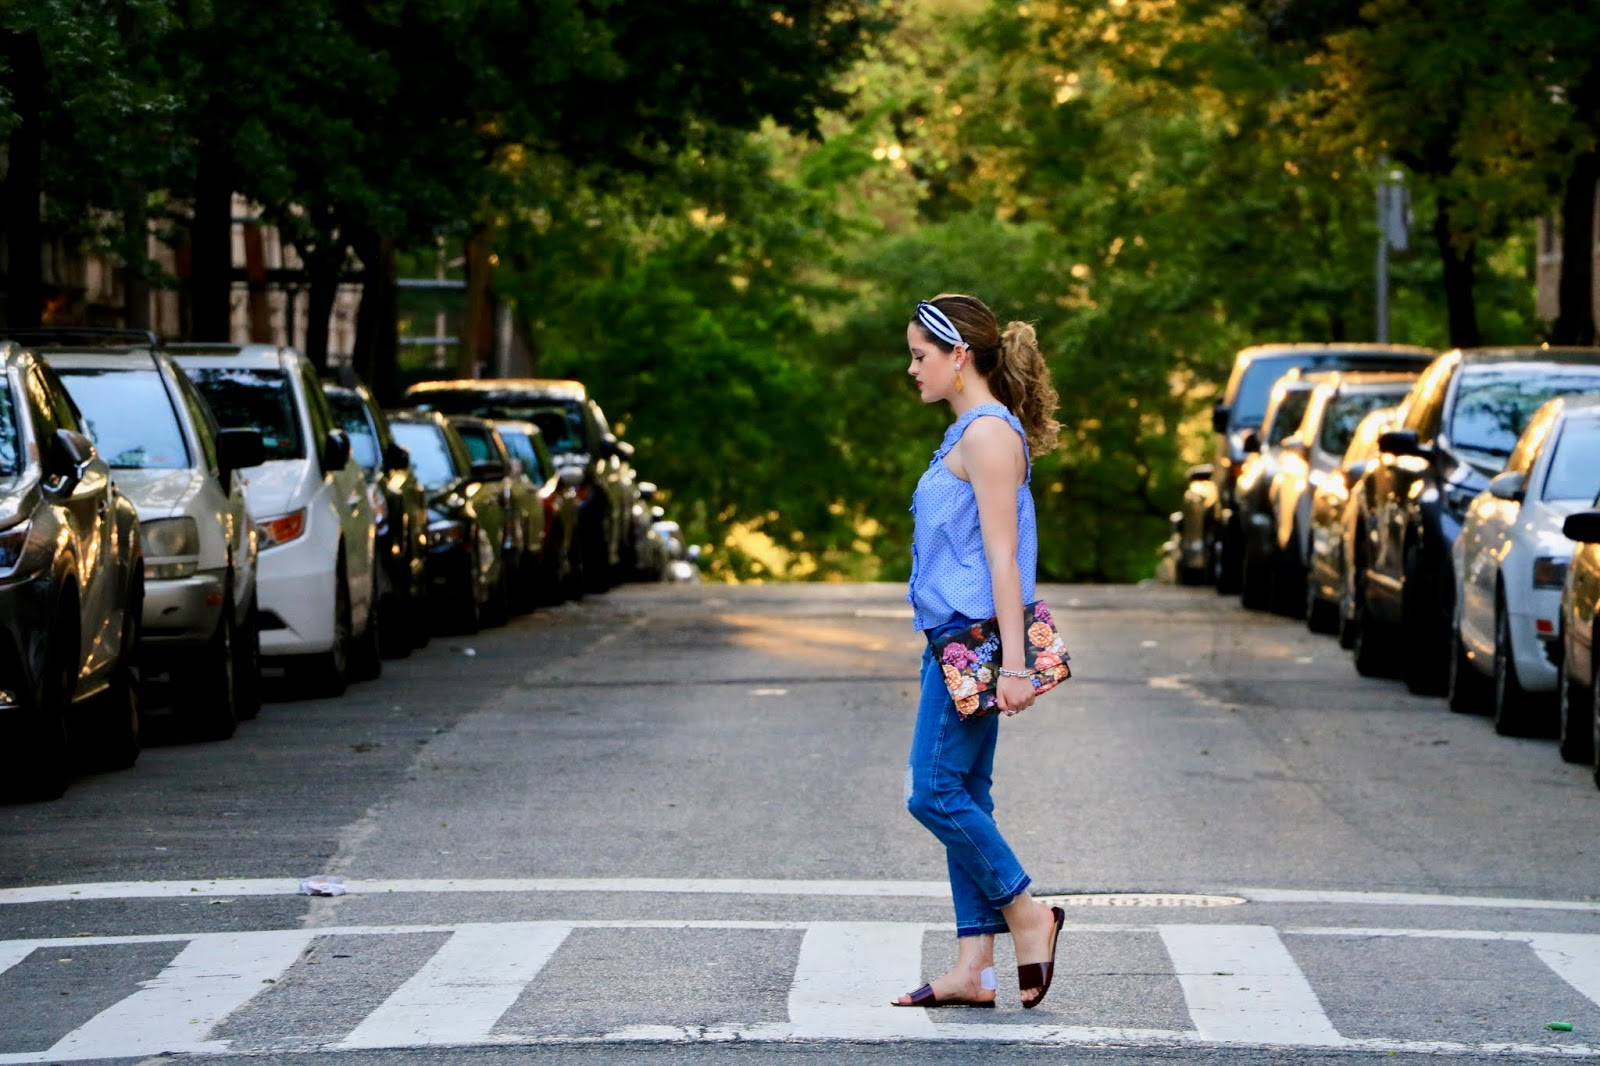 Nyc fashion blogger Kathleen Harper wearing a polka dot ruffle top and jeans.